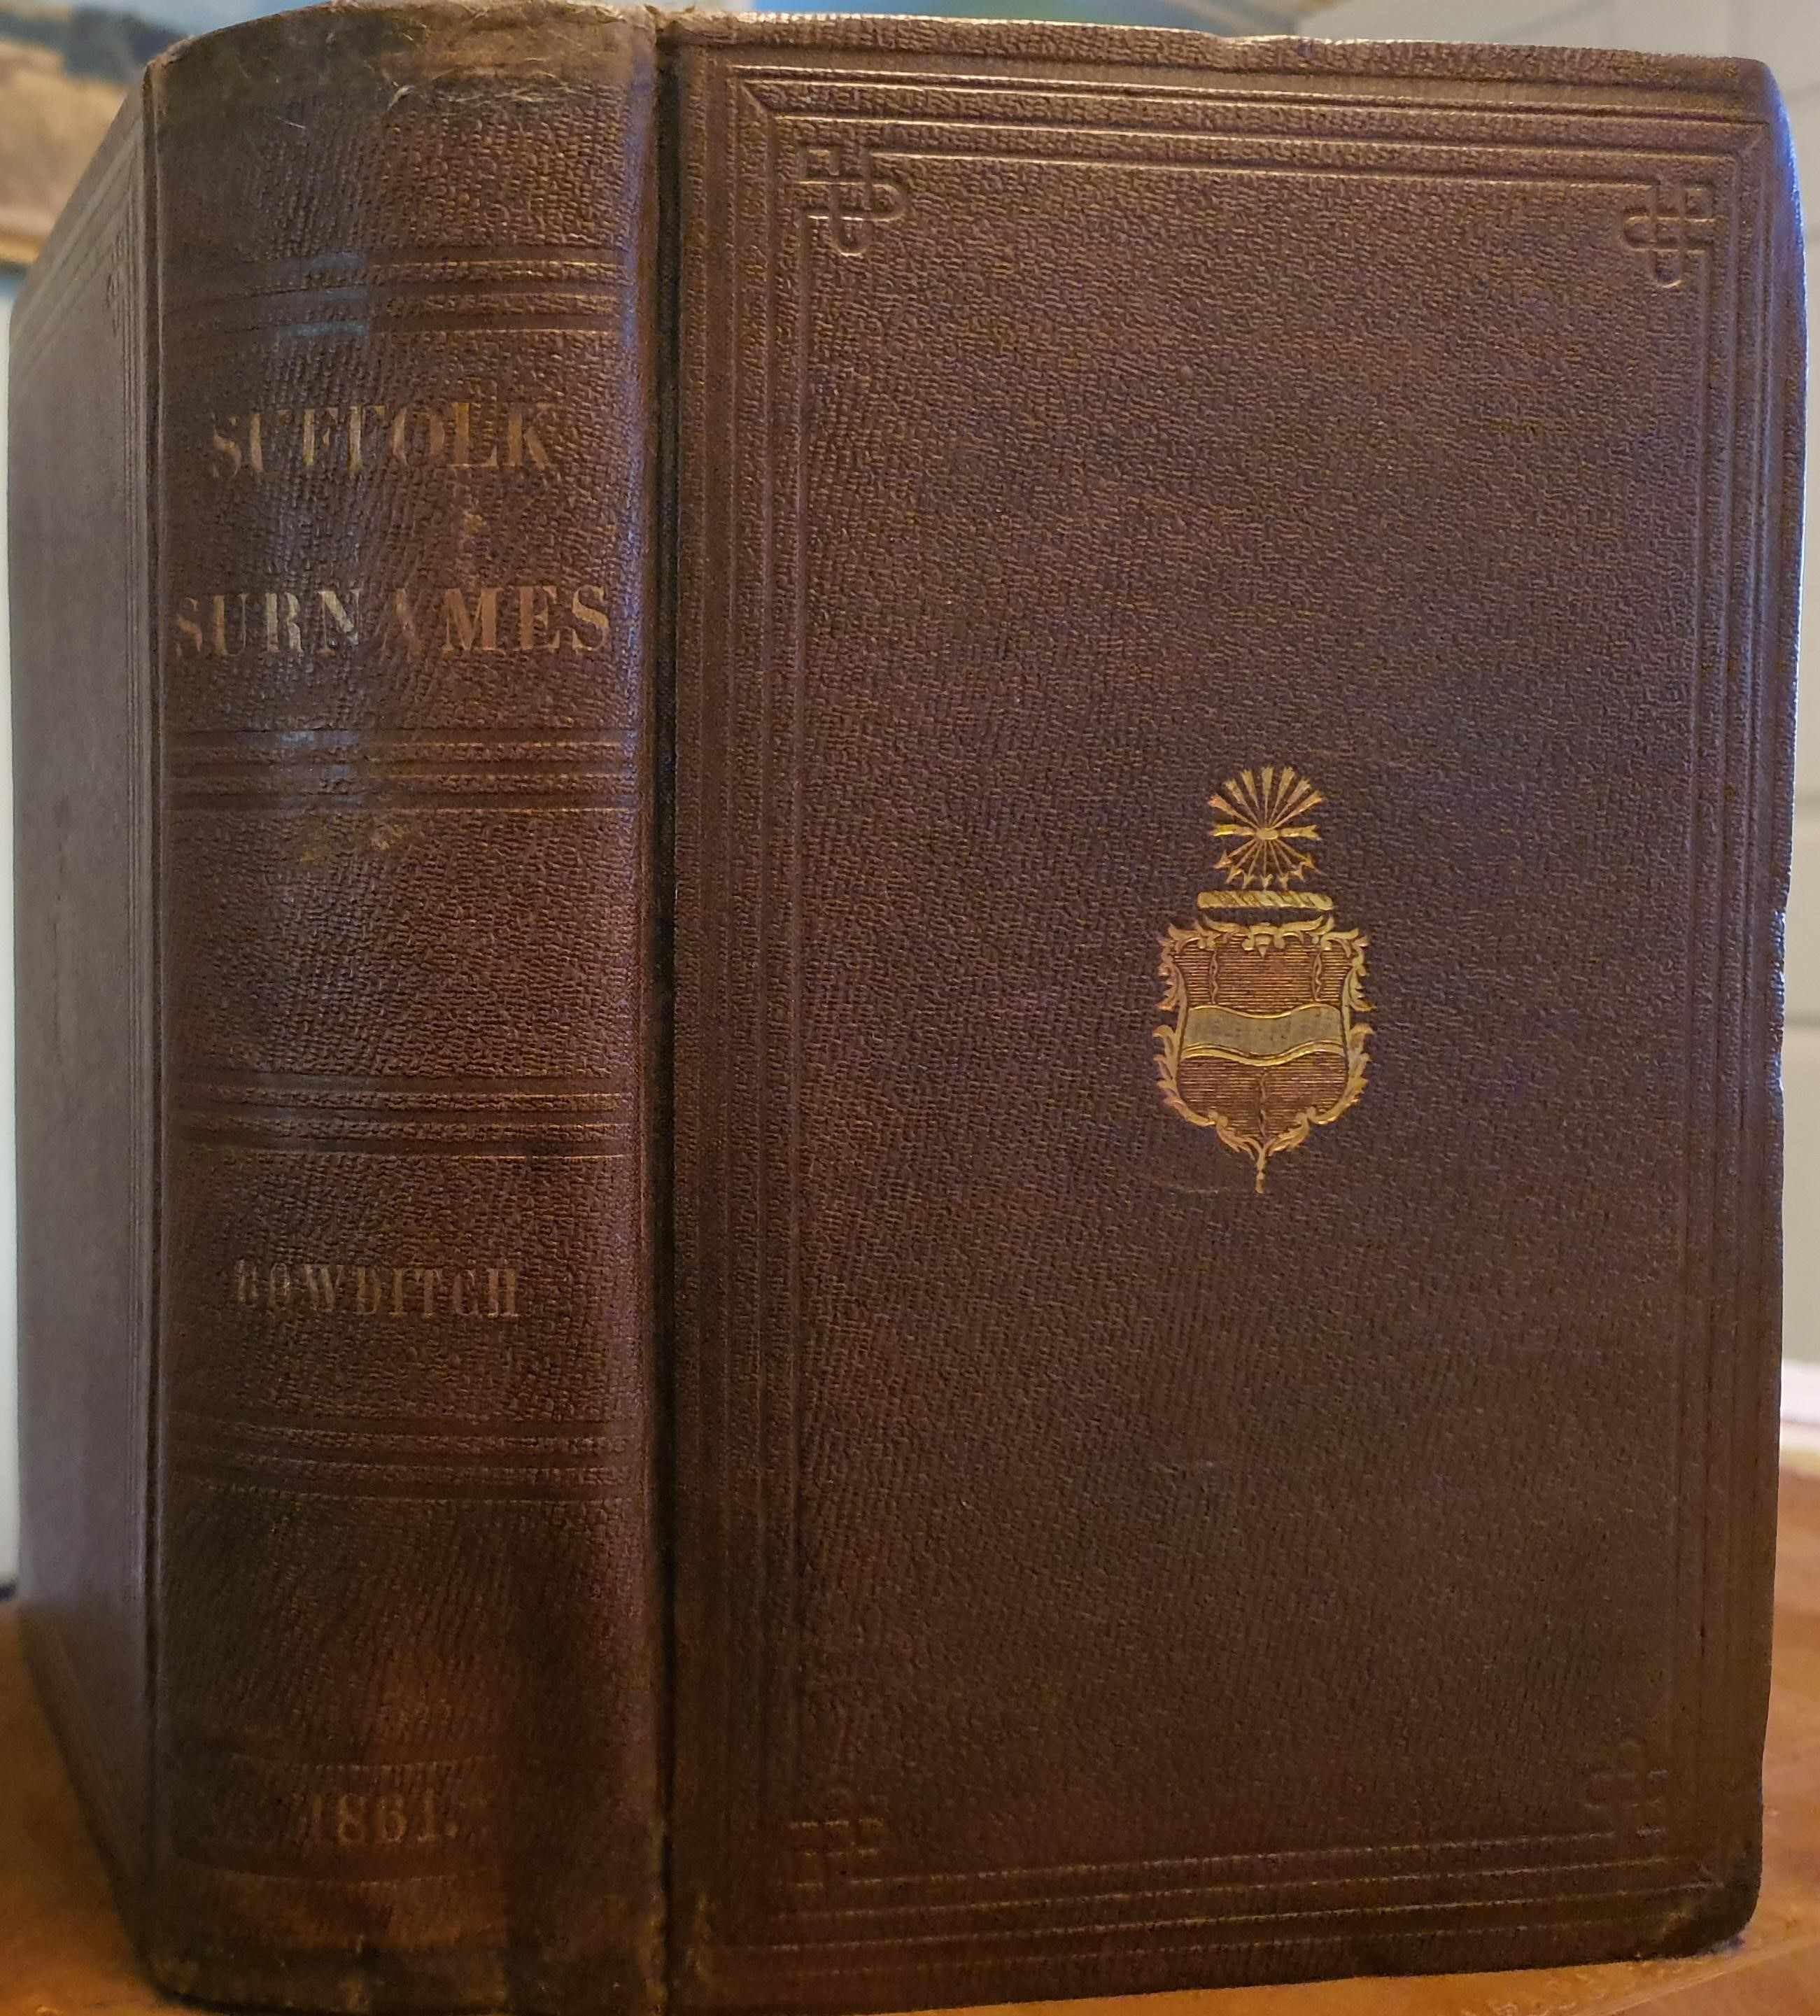 Image for Suffolk Surnames. By N. I. Bowditch. Third Edition.